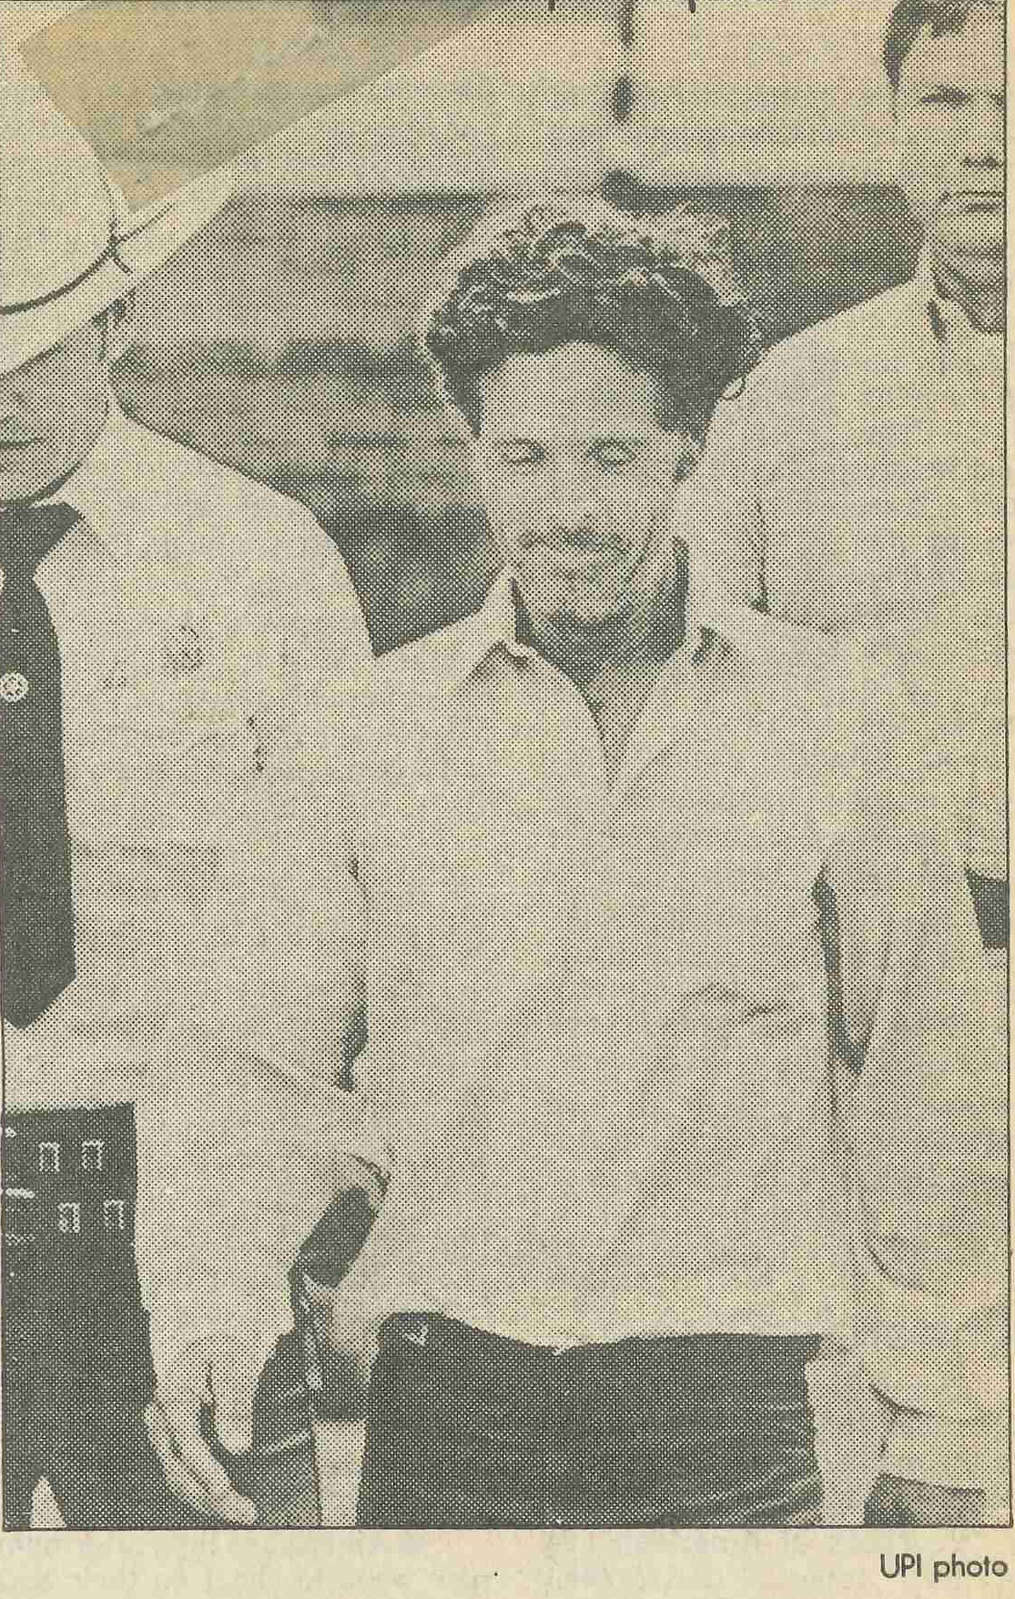 A picture of a photo from a newspaper clipping. Henry Lee Lucas is dressed in a light collared shirt and has an unshaven face. He is walking, with two officers behind him.